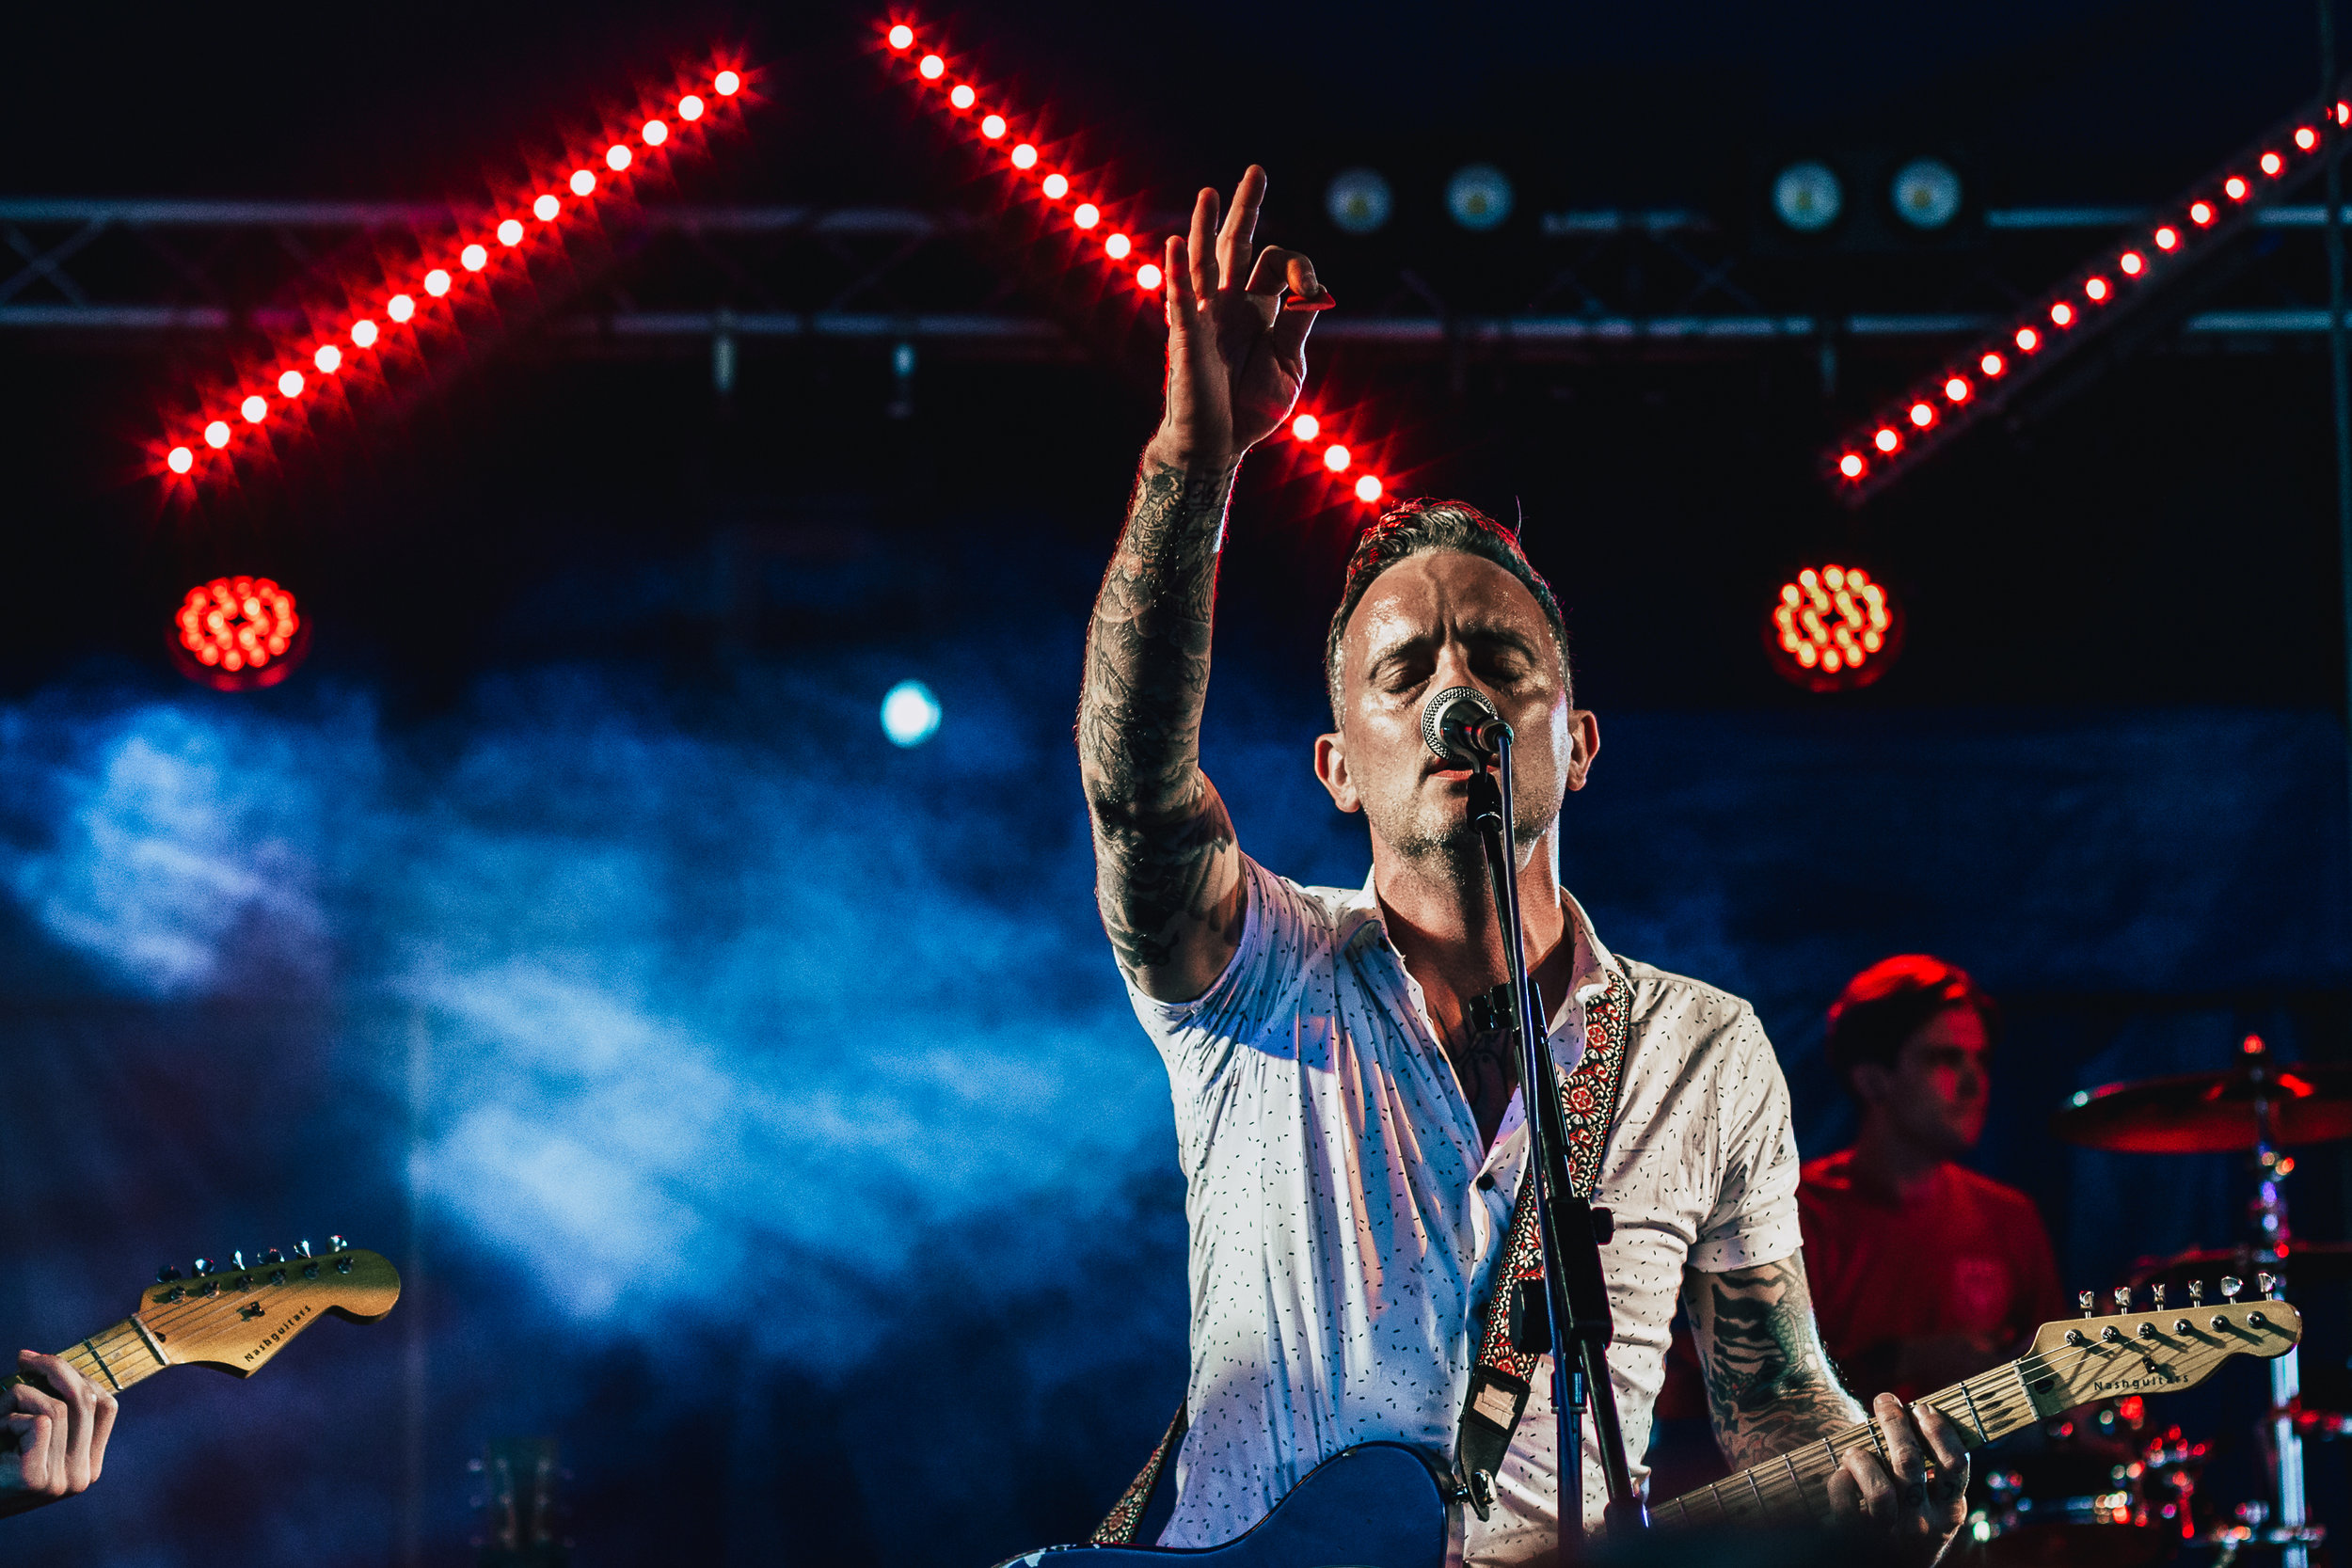 As the sun went down, Dave Hause & The Mermaid gave fans everything they needed to stick around!